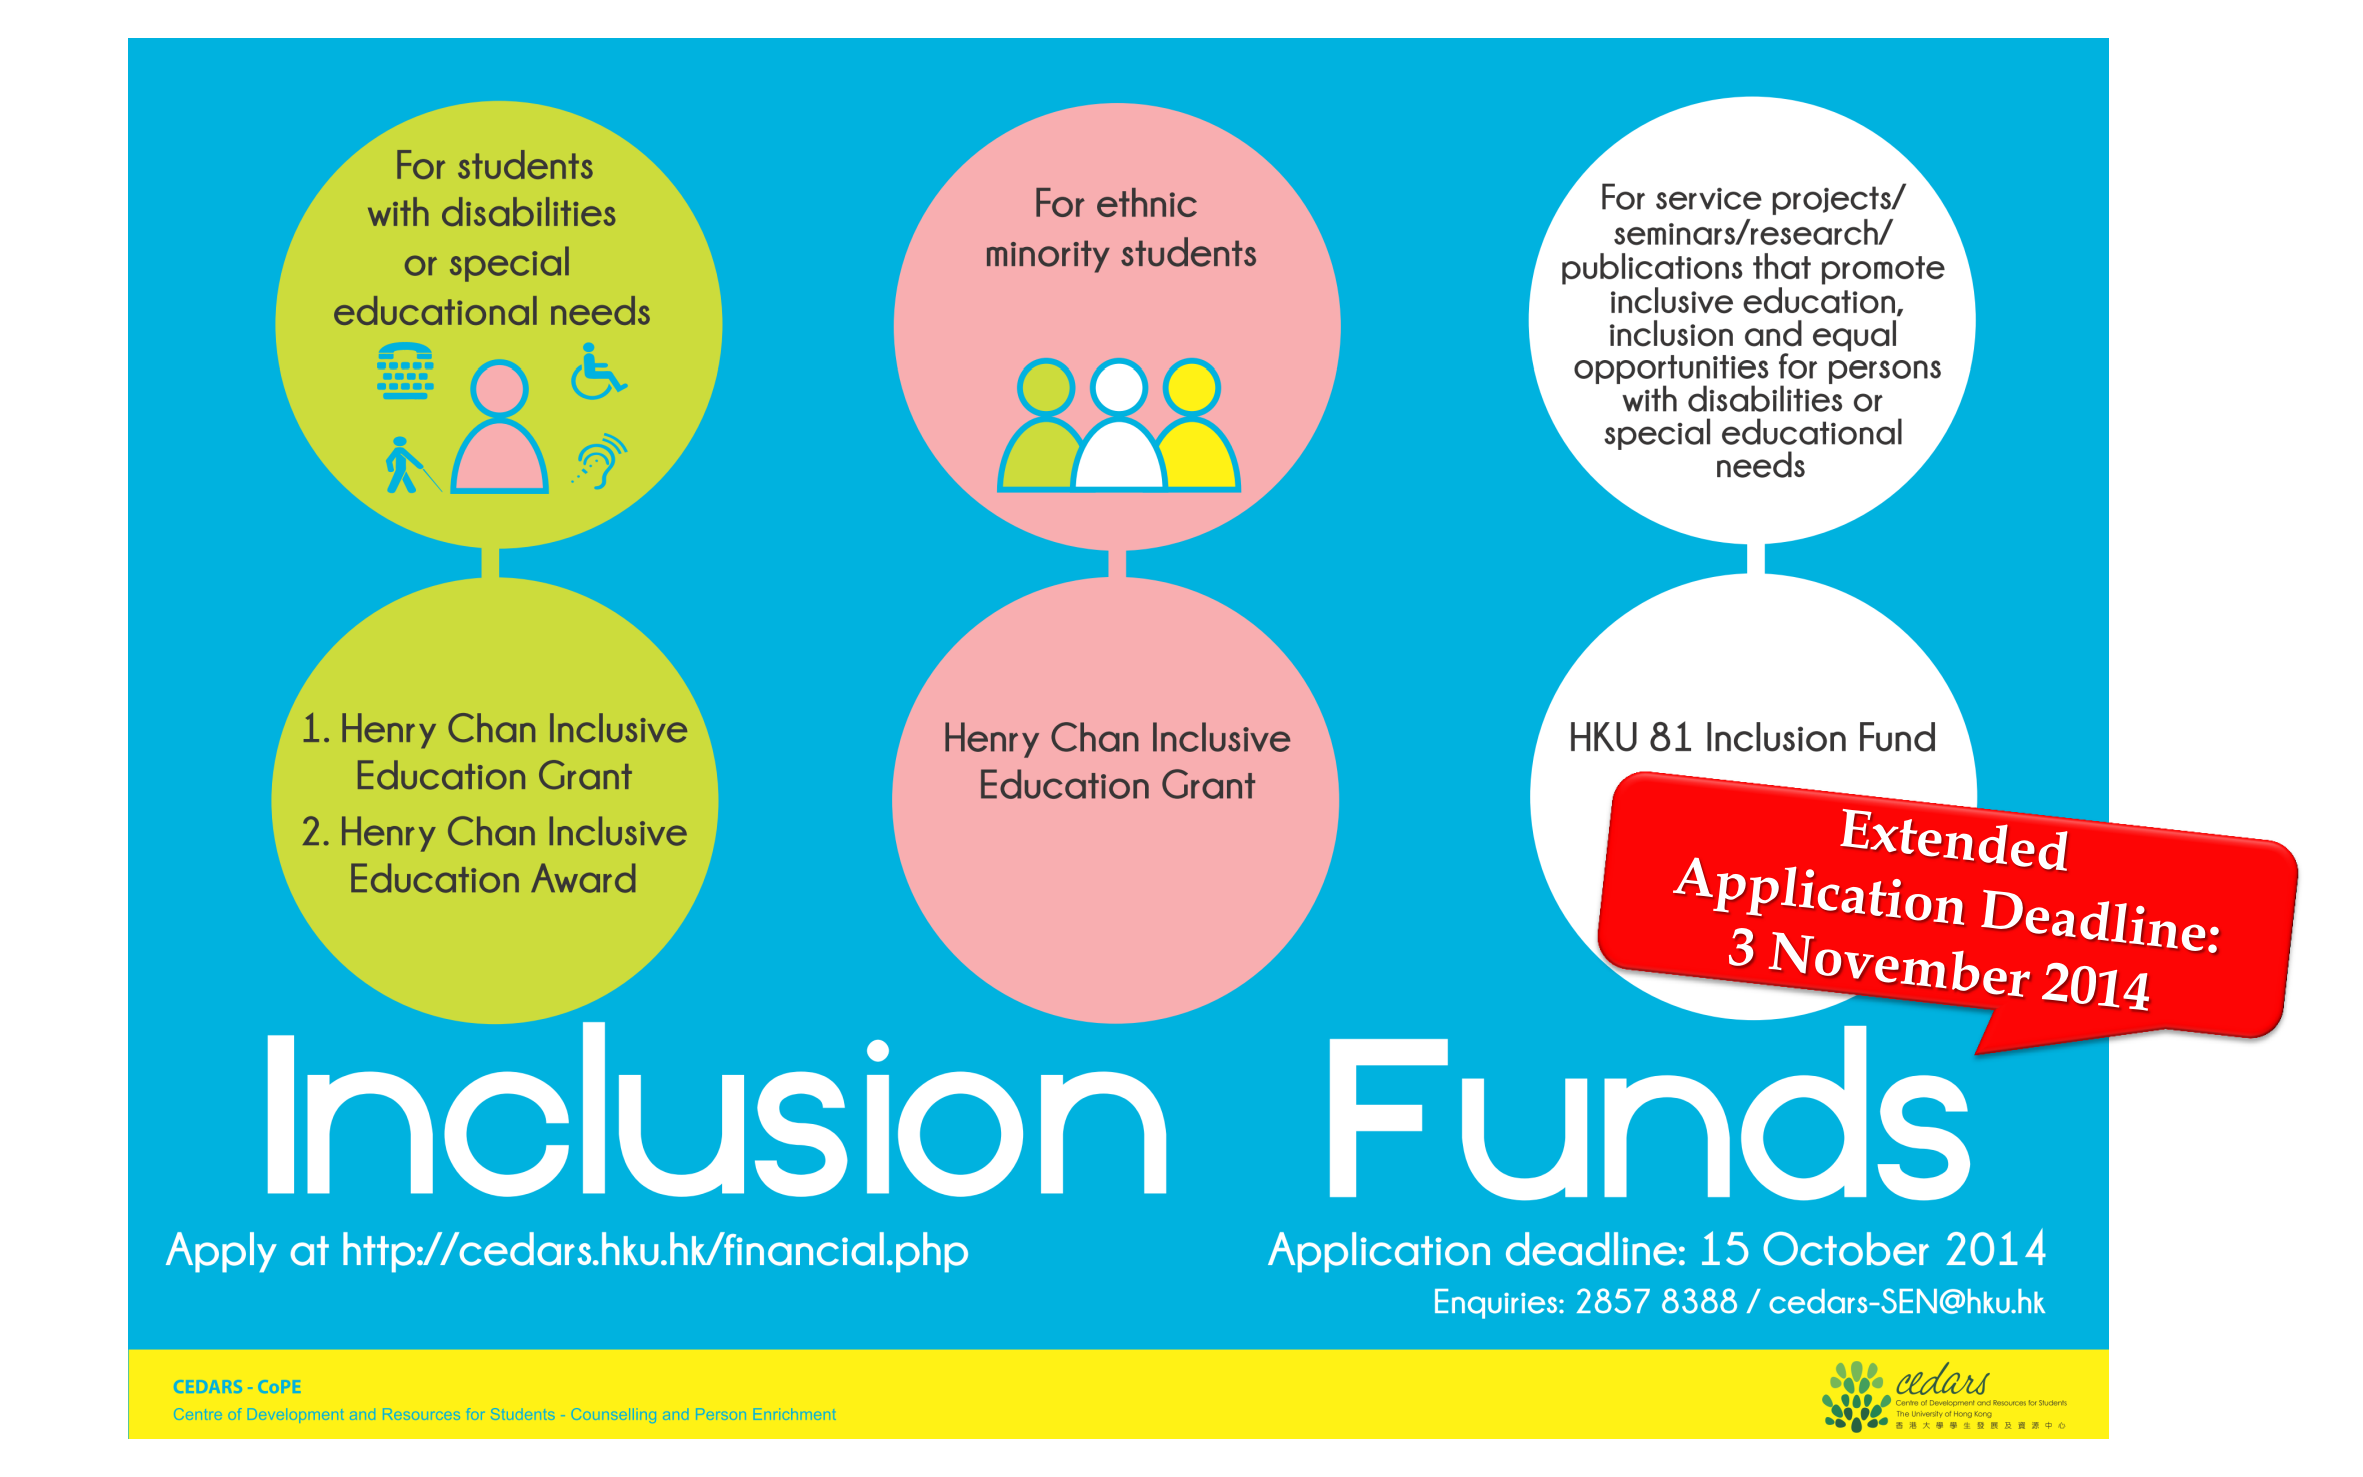 Inclusion Funds App DL extended